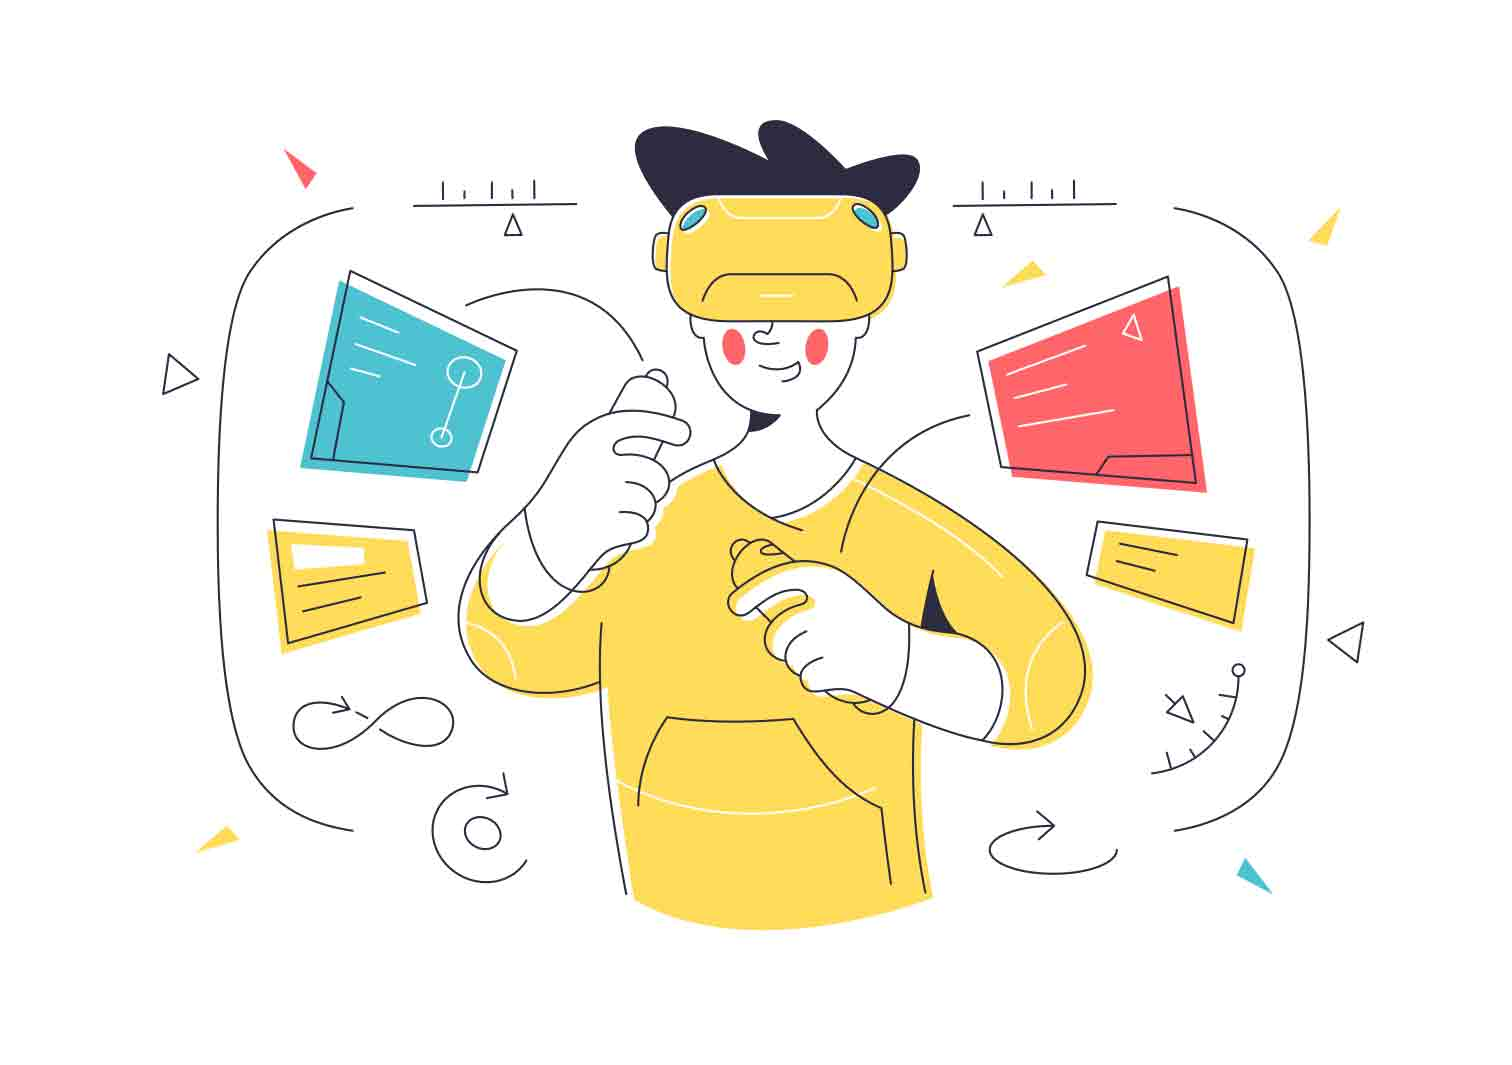 Simple illustrations in combined line and flat styles. Vector character illustrations.